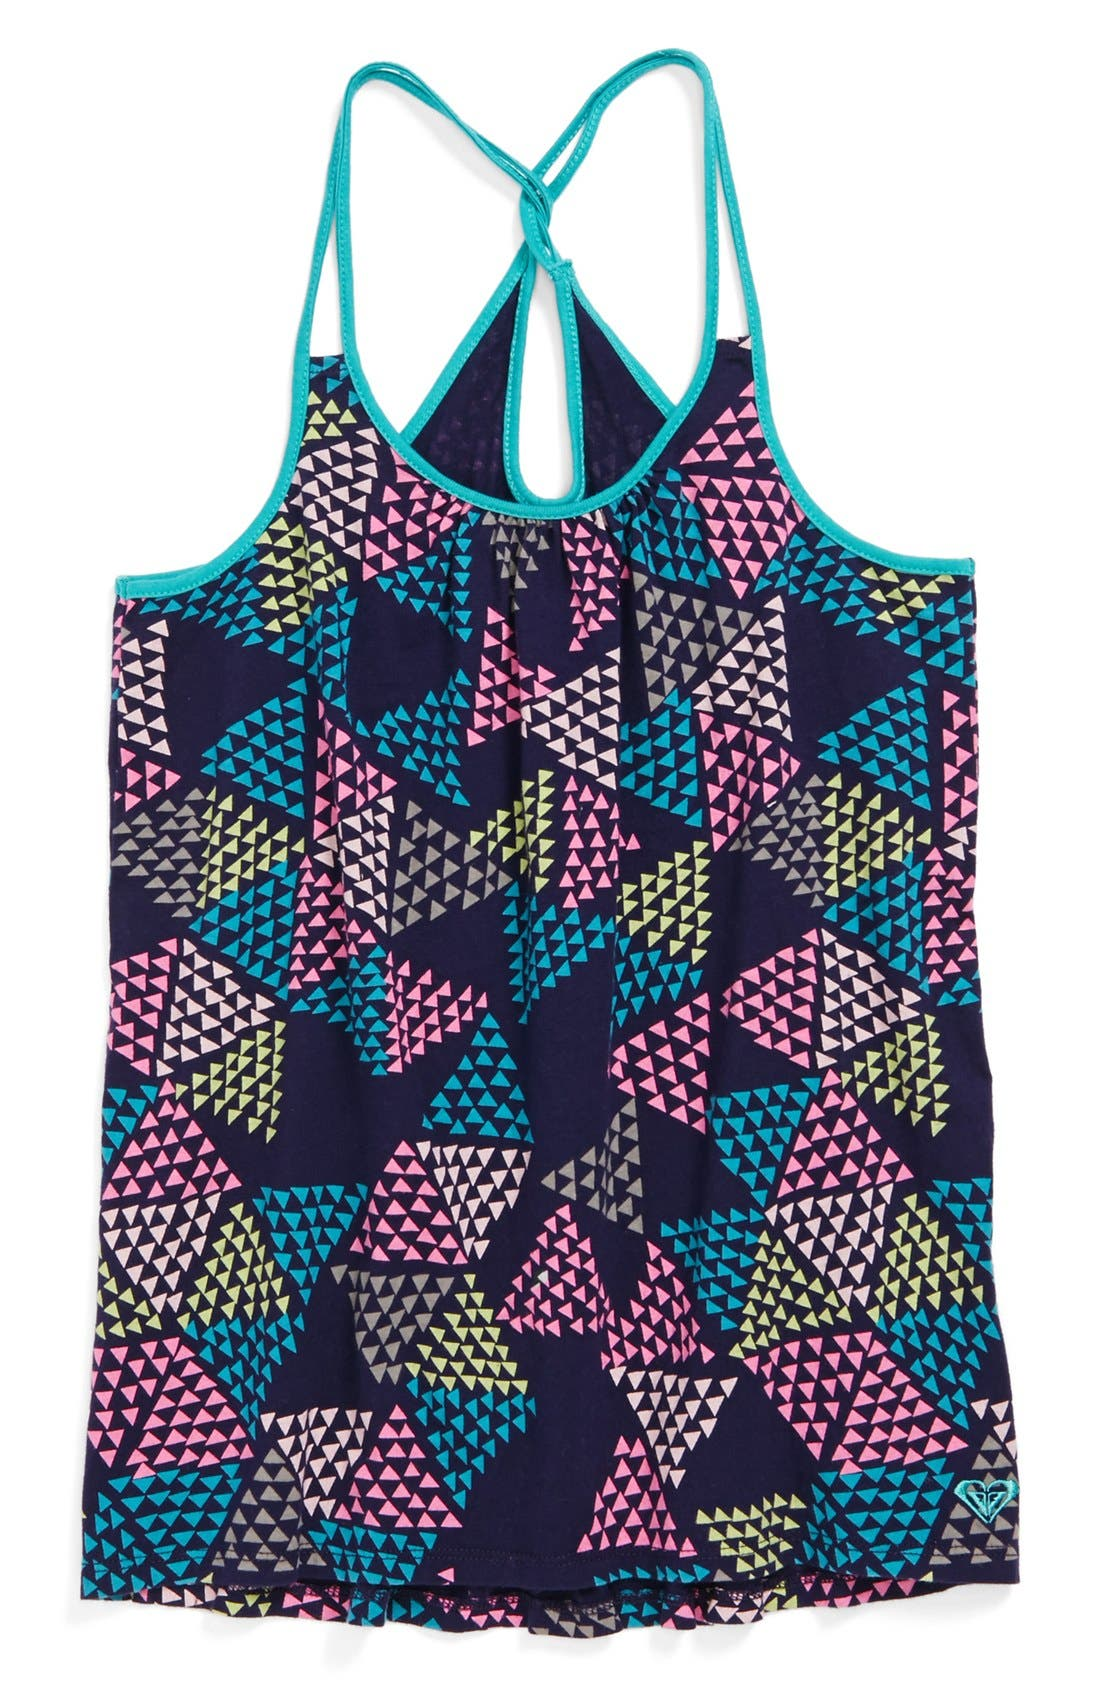 Alternate Image 1 Selected - Roxy 'Oak Holly' Tank Top (Big Girls)